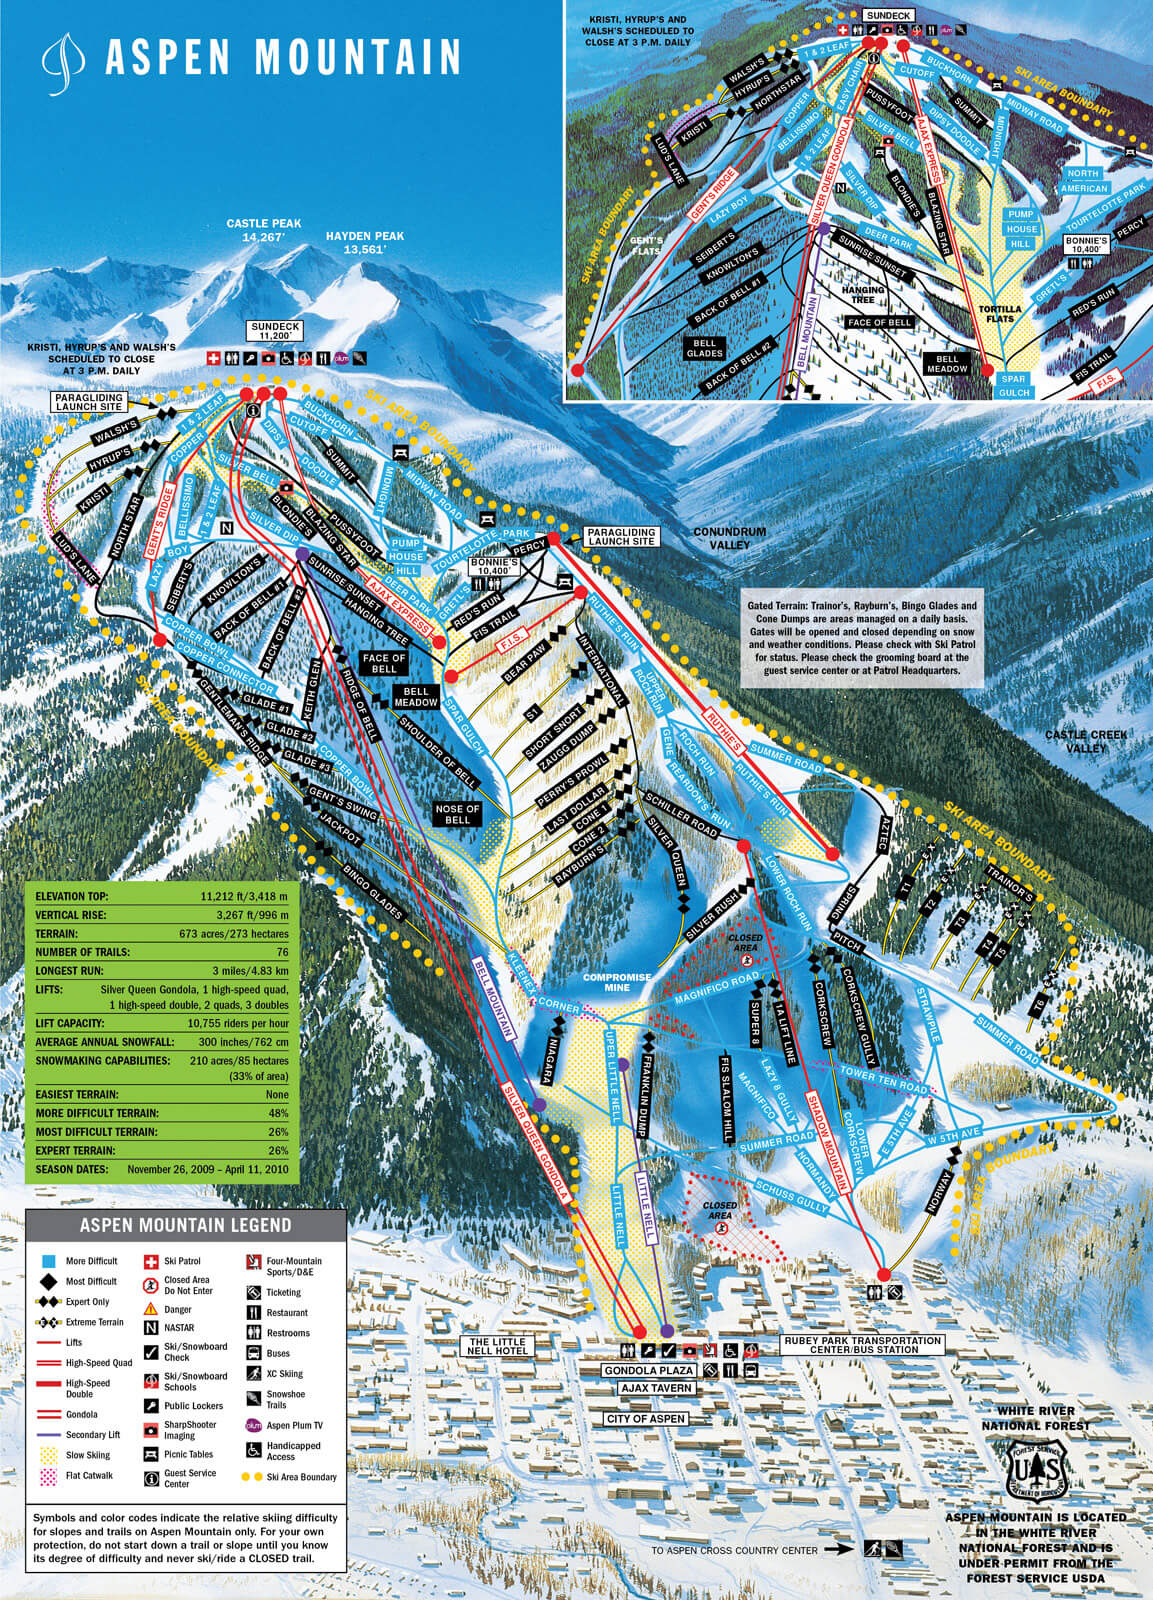 Aspen Mountain map